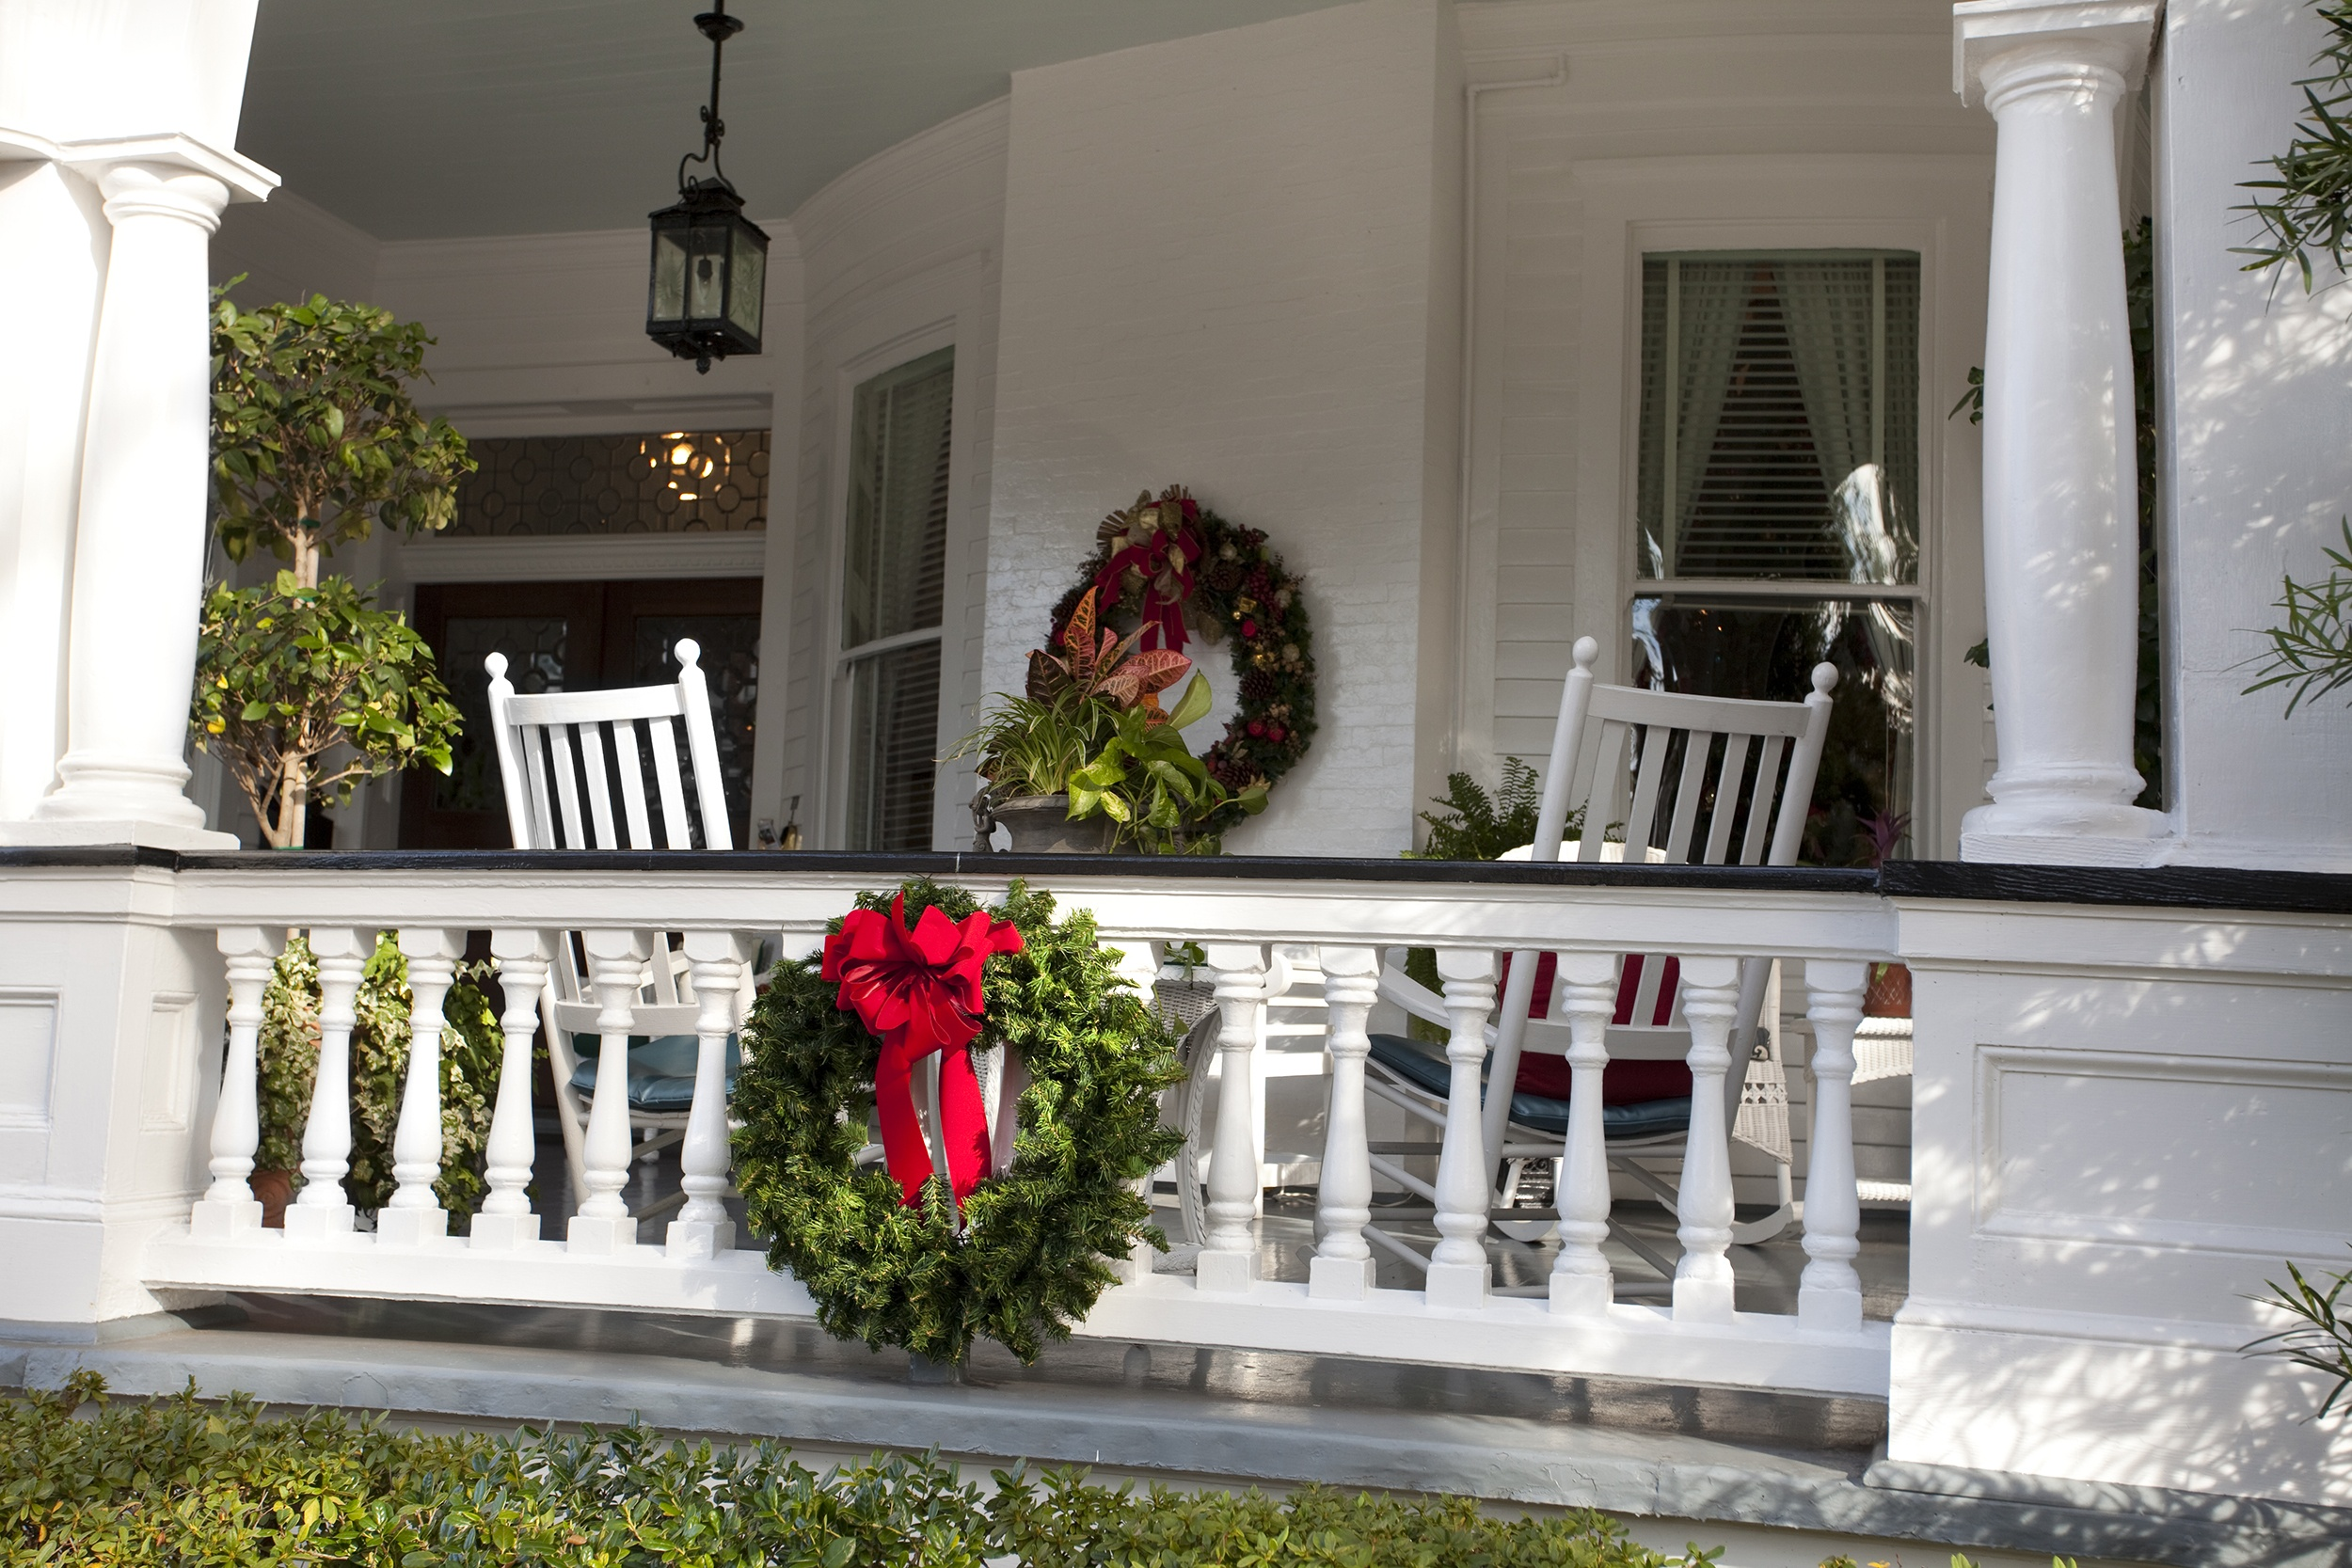 Attractive Holiday Porch Decorating Ideas Part - 4: Create A Festive Christmas Porch With Wreaths Hanging Along Railings And  Down The Staircase.